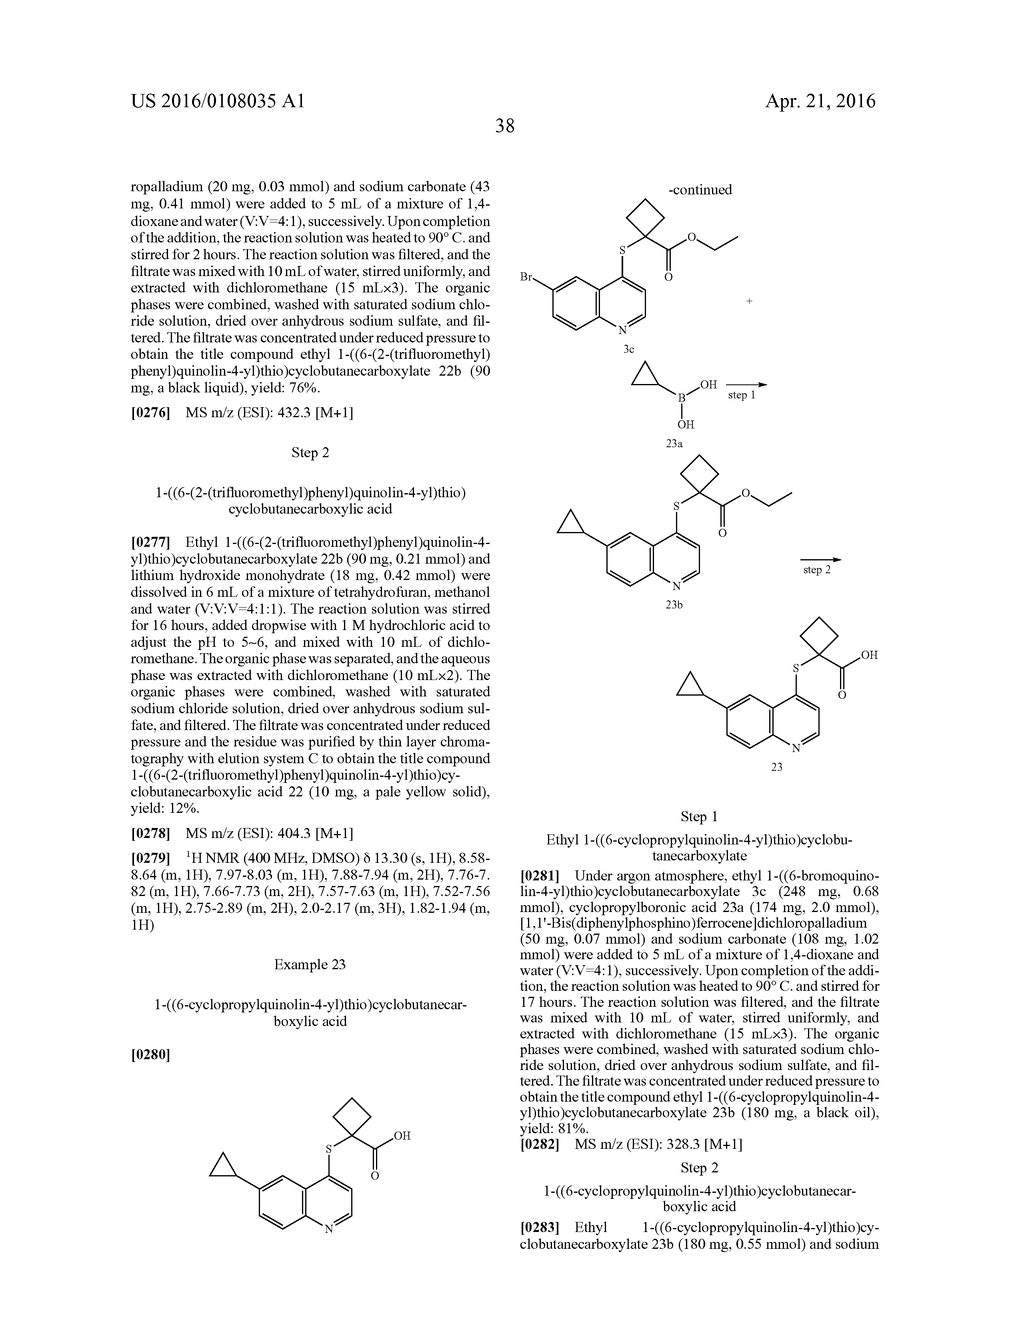 CYCLOALKYL ACID DERIVATIVE, PREPARATION METHOD THEREOF, AND PHARMACEUTICAL     APPLICATION THEREOF - diagram, schematic, and image 39